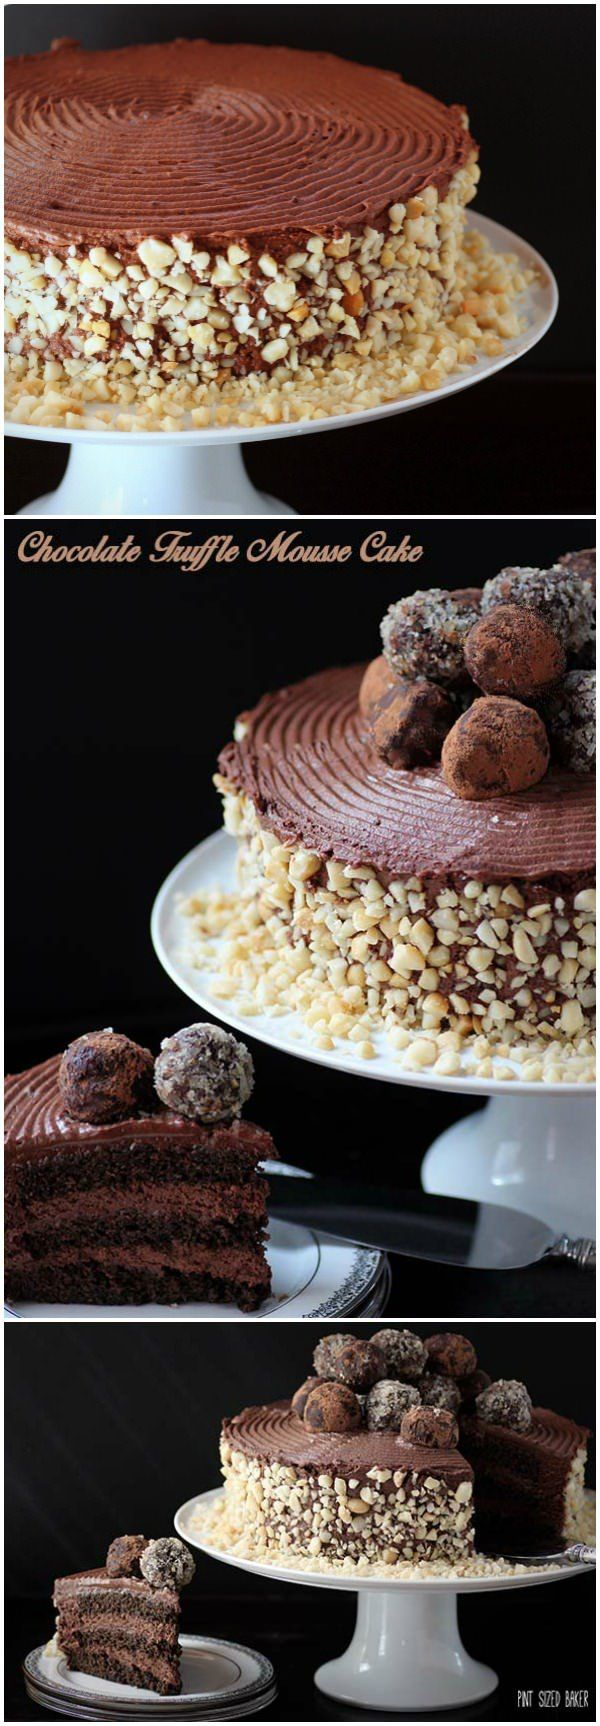 A decadent Chocolate Truffle Mousse Cake that is worthy of a formal party. Three layer cake with truffles and chocolate mousse frosting.